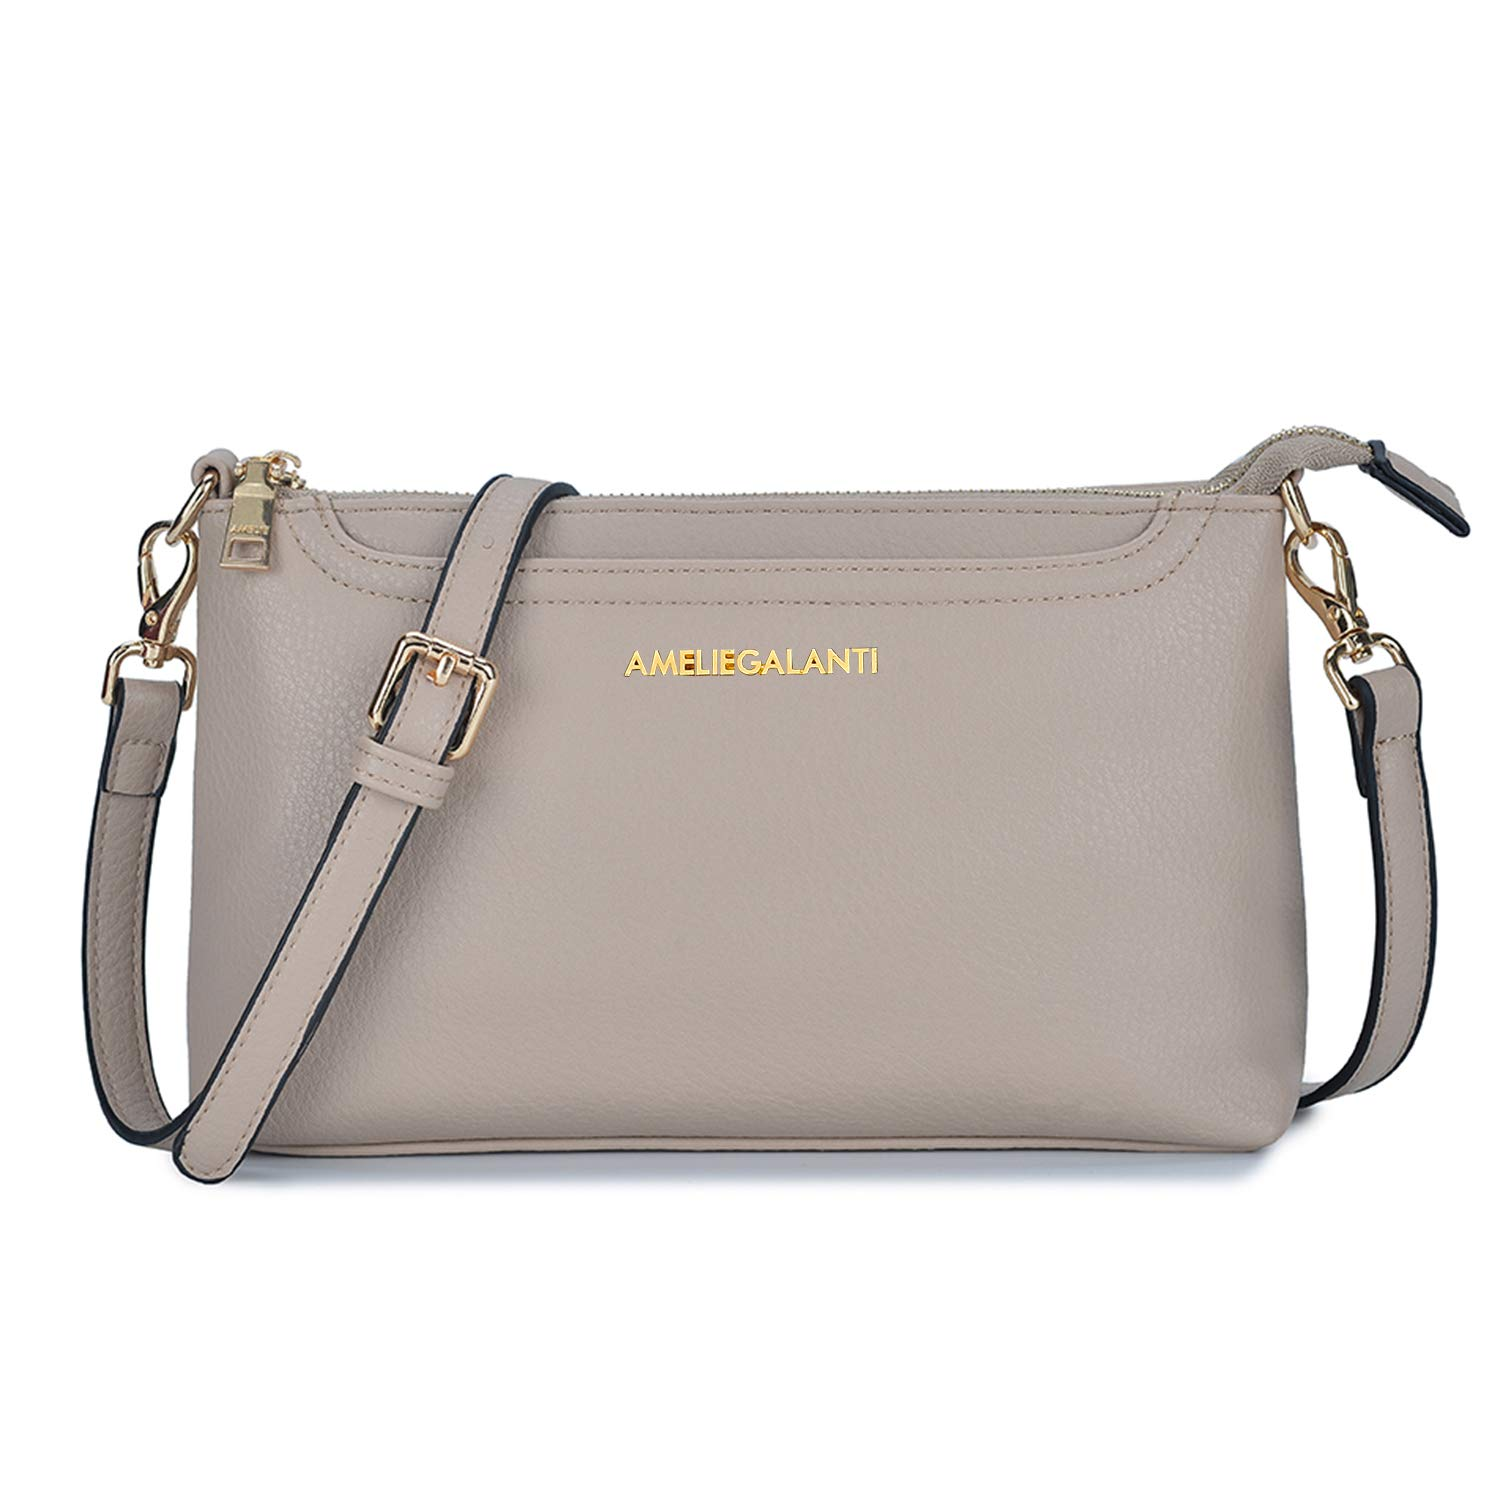 3c55bac80b8 Crossbody Bags for Women, Lightweight Purses and Handbags PU Leather Small  Shoulder Bag Satchel with Adjustable Strap